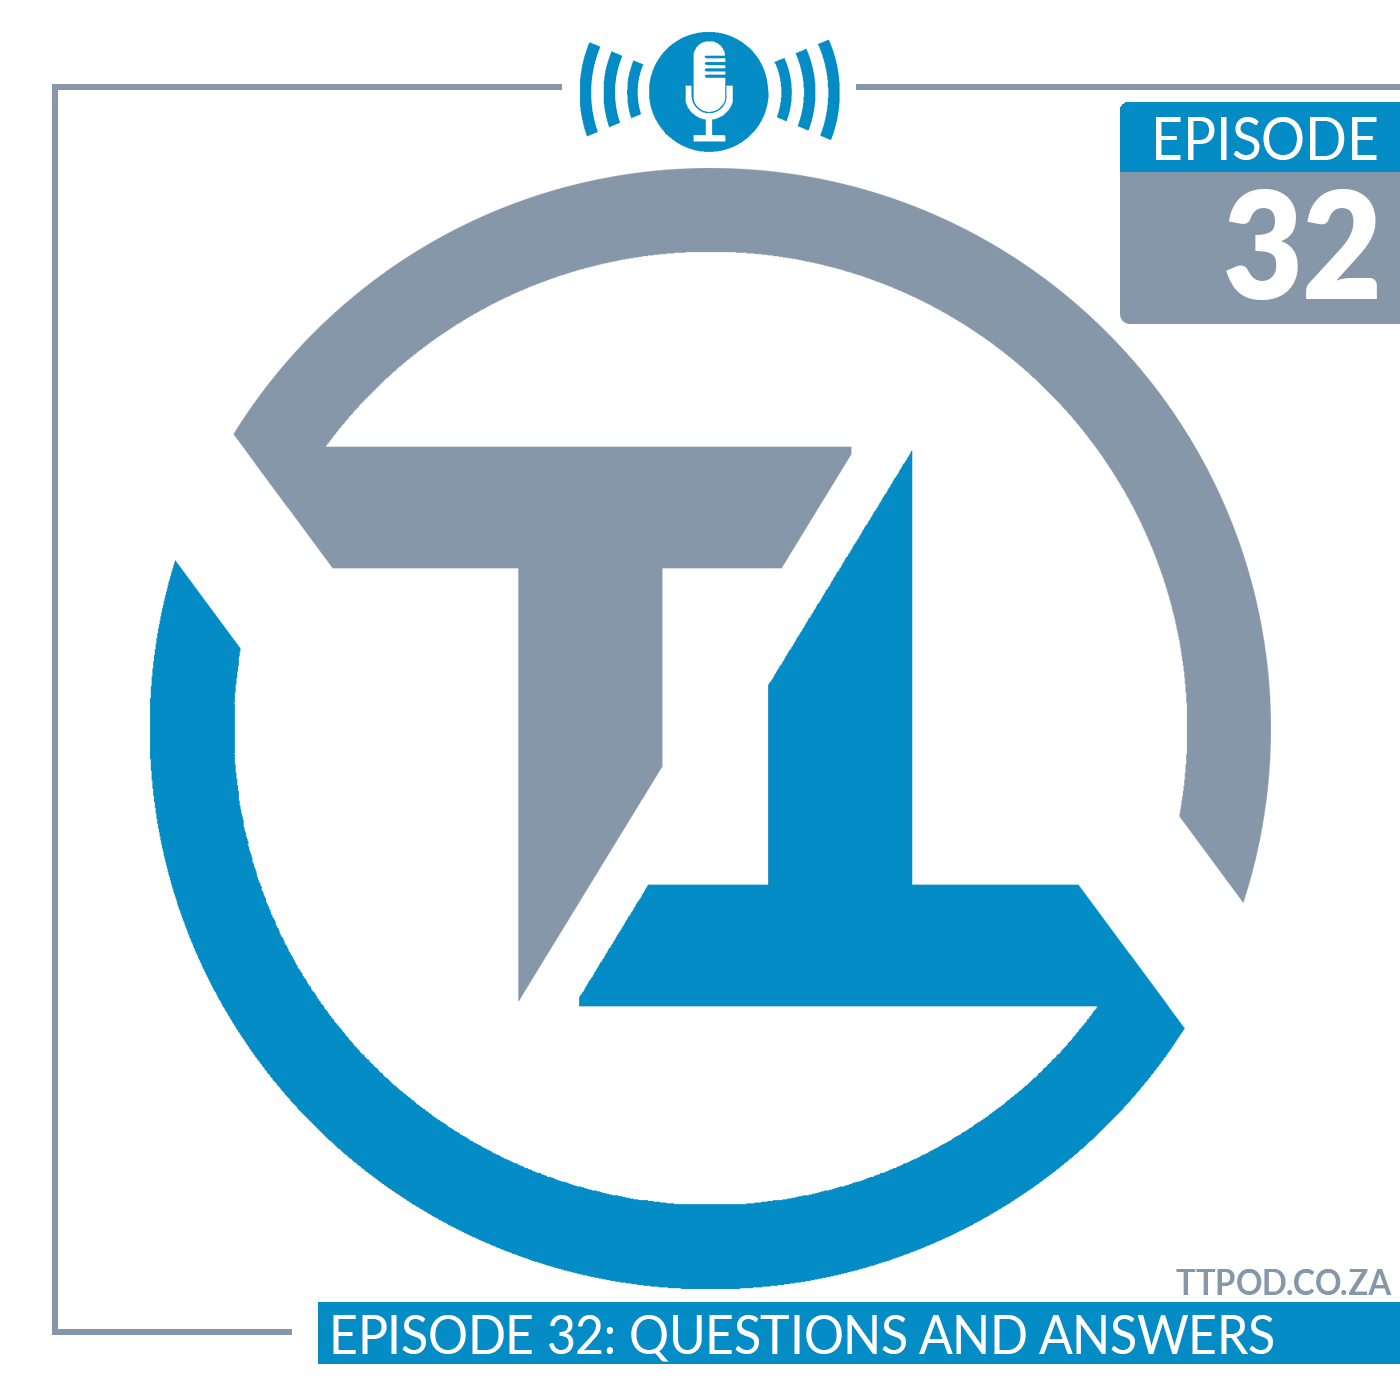 Episode 32: Questions and Answers